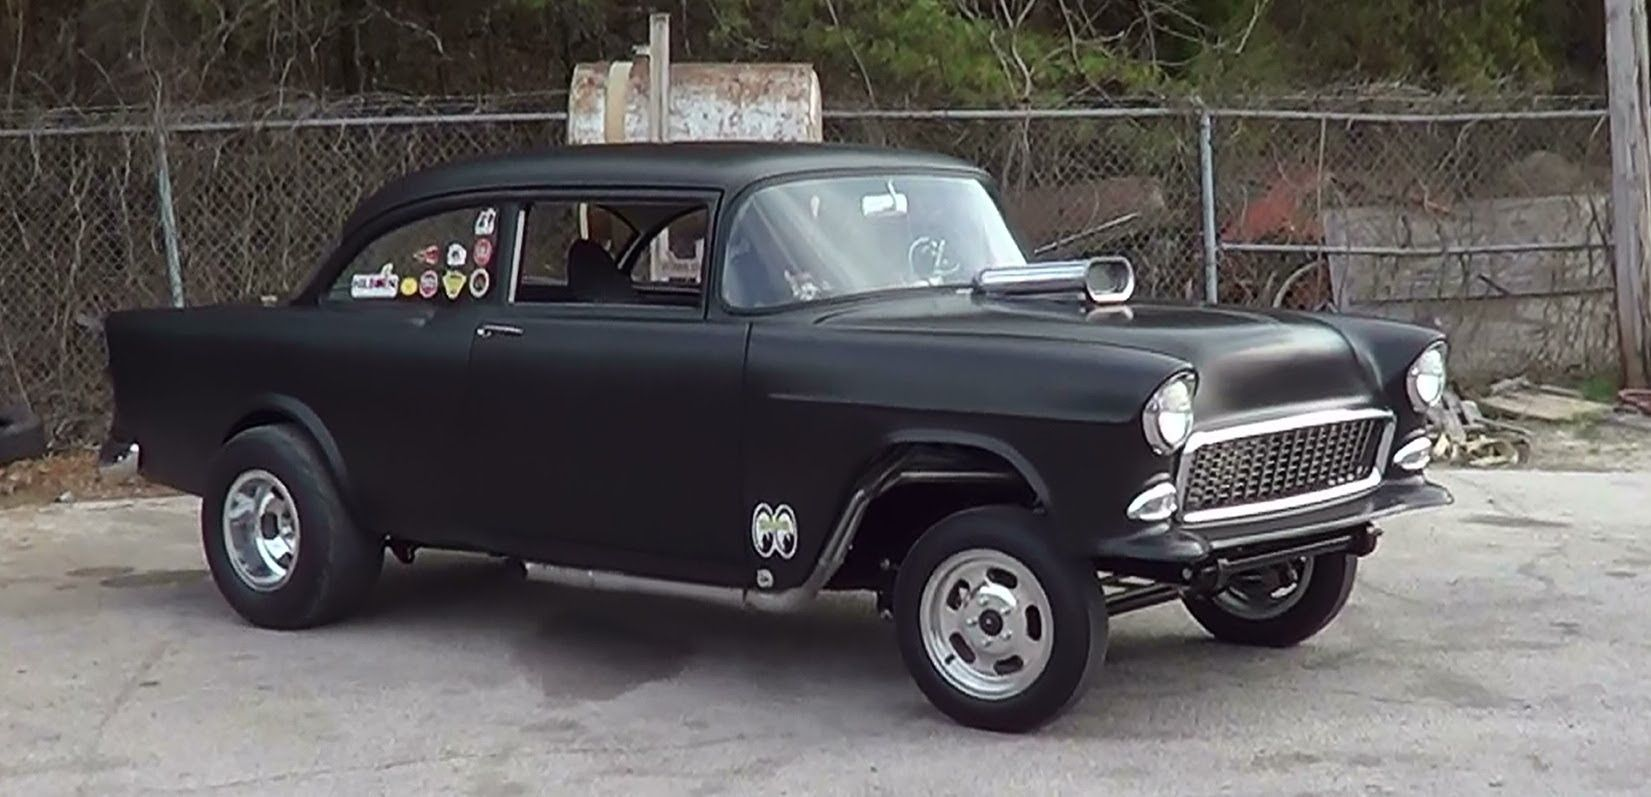 1955 chevy truck car clubs autos post - Cars 52 Chevy Gasser On The Street Maxresdefault Jpg